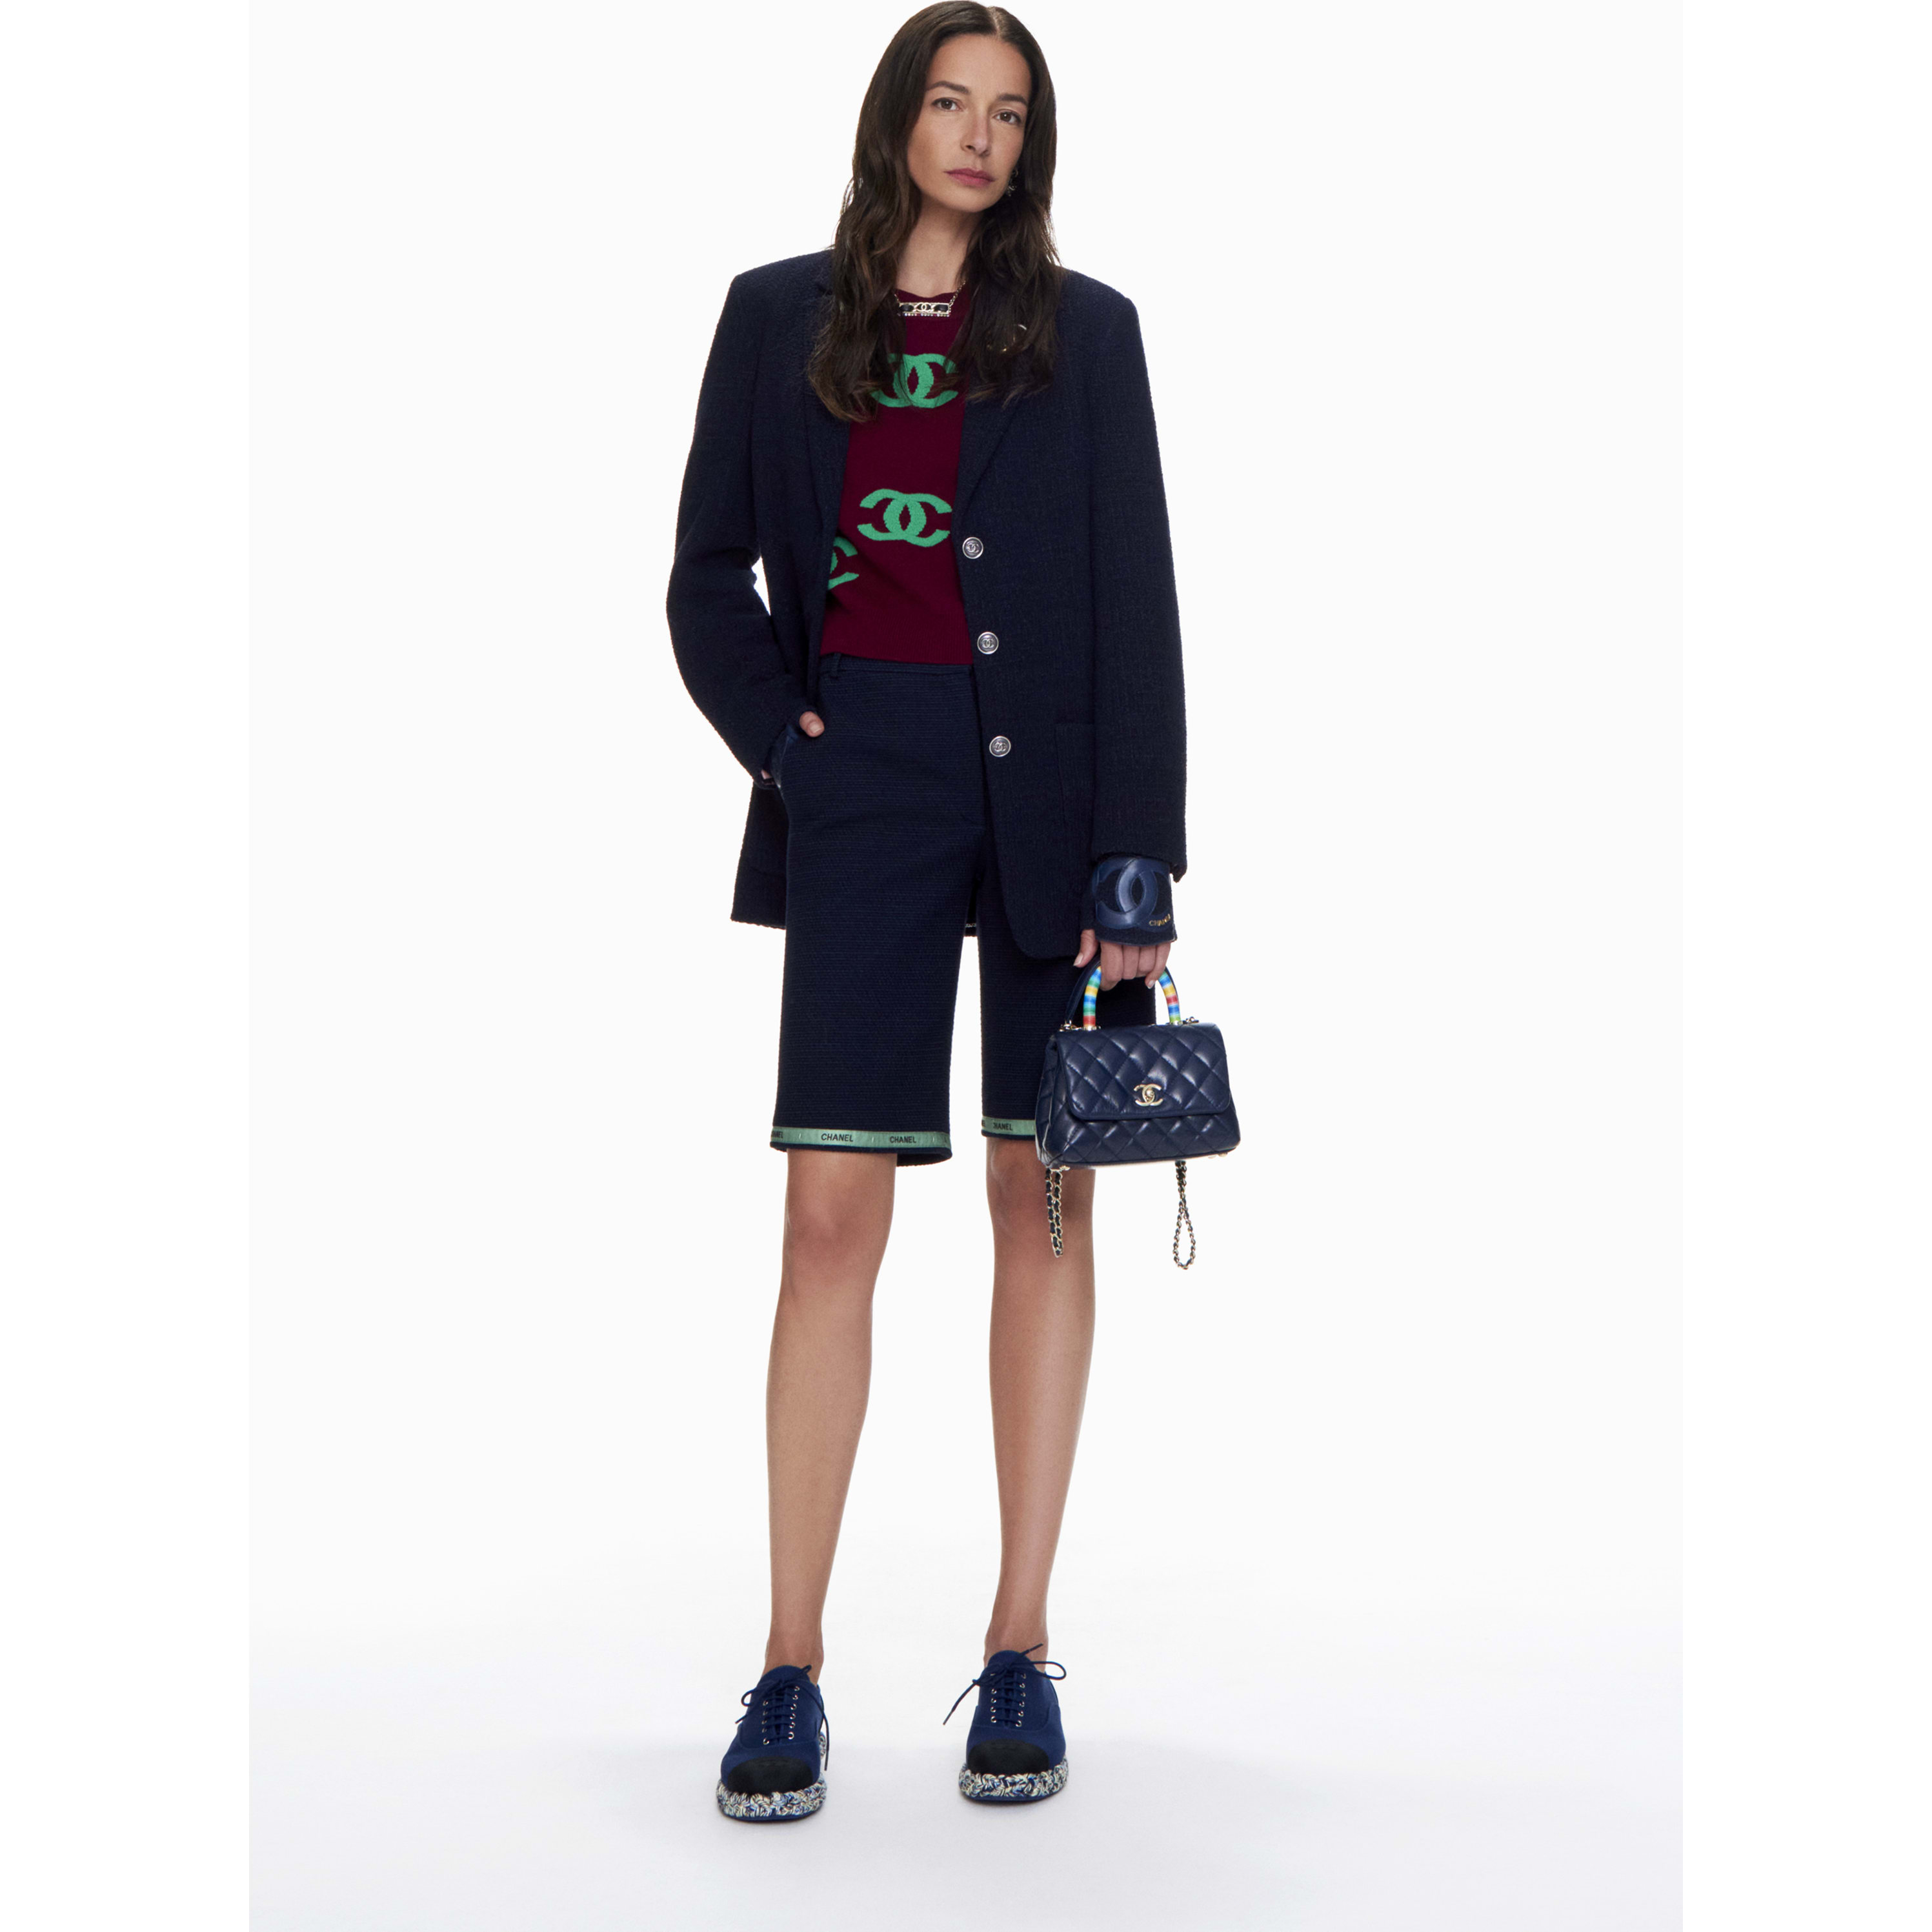 Jacket - Navy Blue - Cotton Tweed - CHANEL - Alternative view - see standard sized version